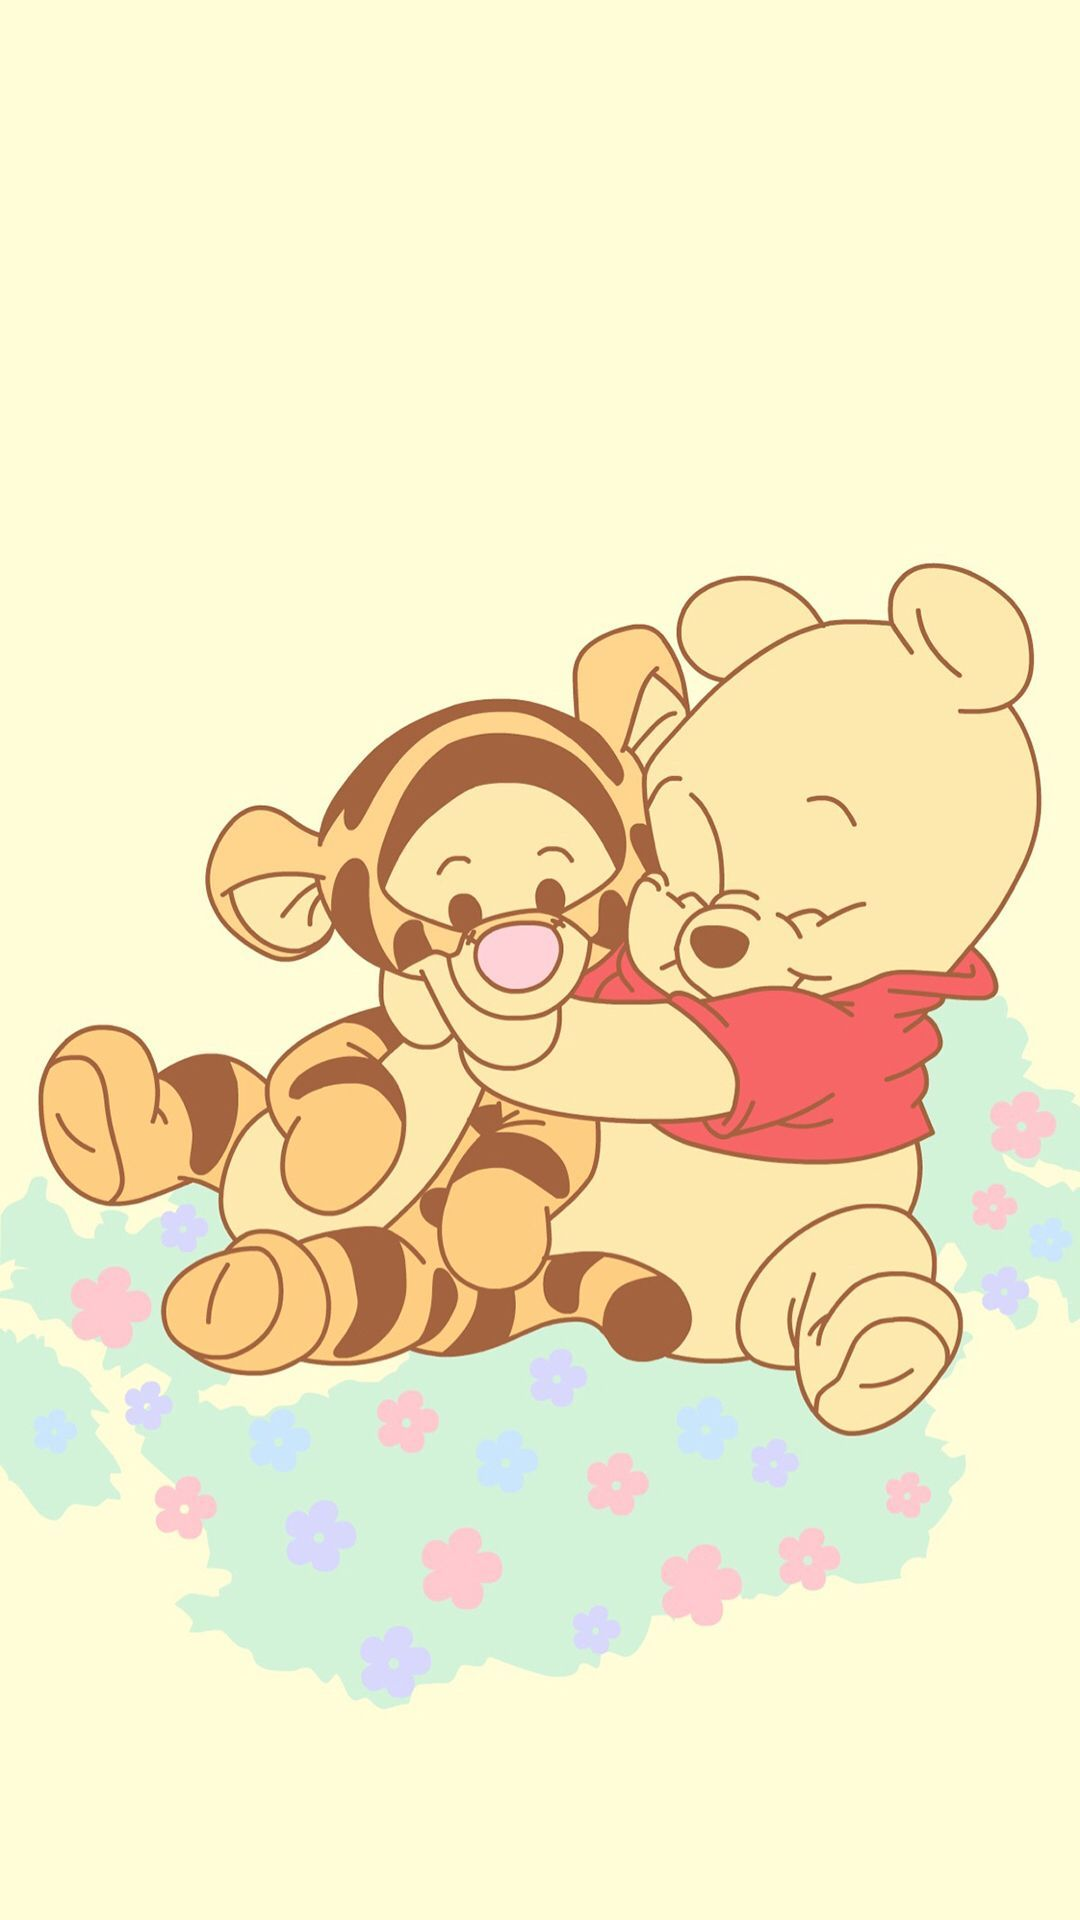 Winnie The Pooh Pictures Hupages Download Iphone Wallpapers Cute Disney Wallpaper Cartoon Wallpaper Cute Disney Drawings